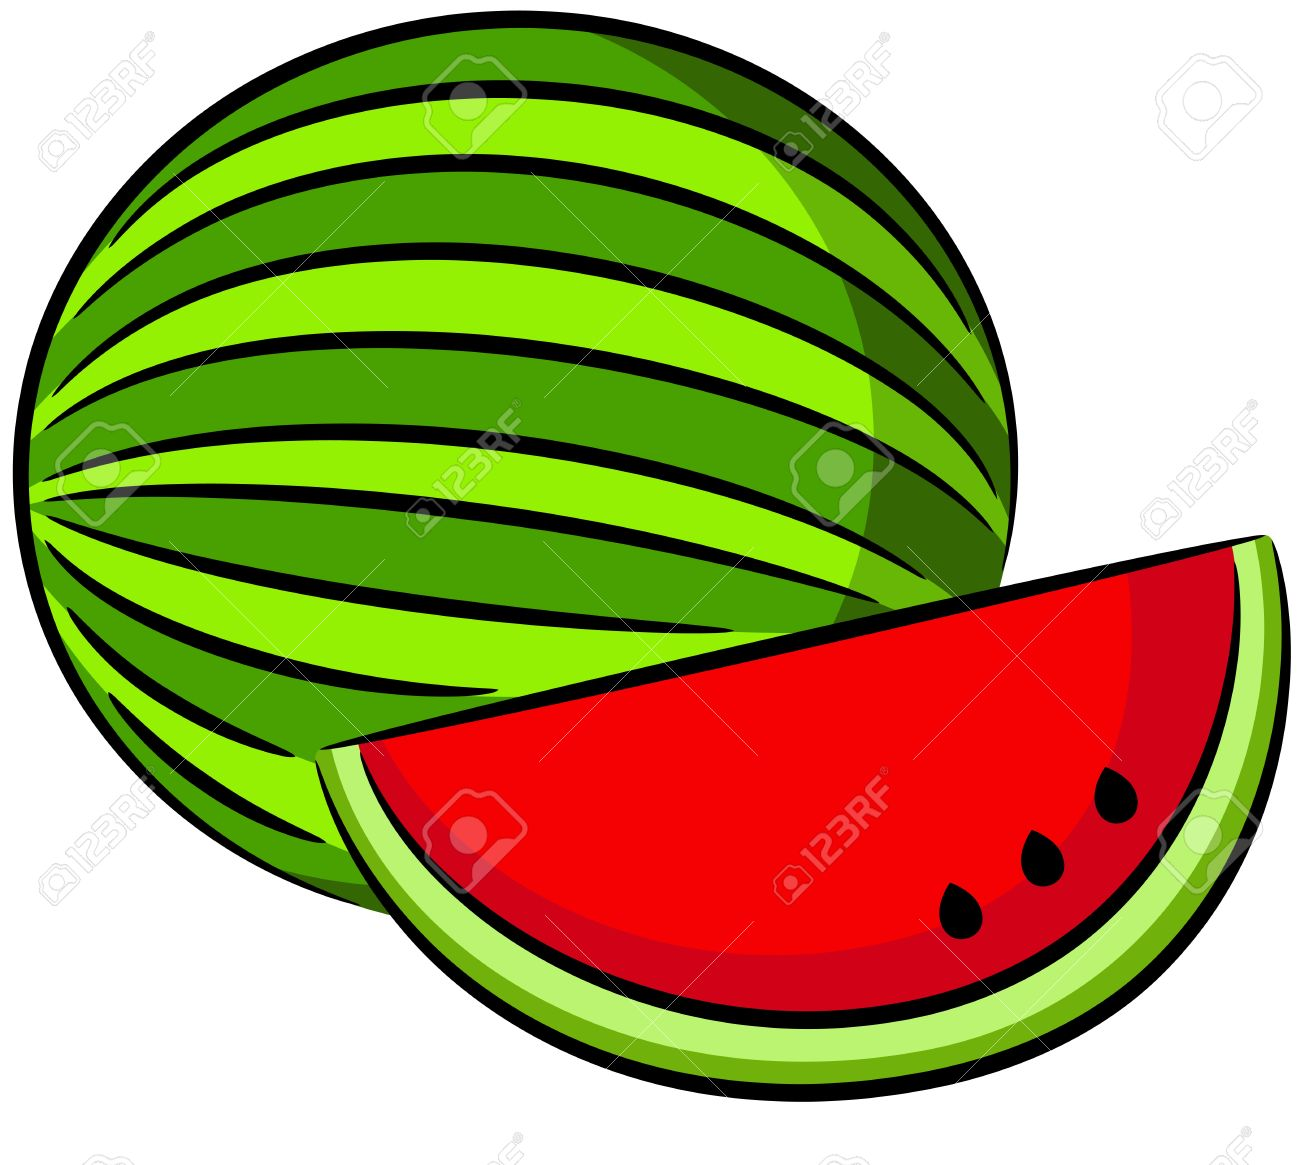 illustration of water melon .-illustration of water melon .-5